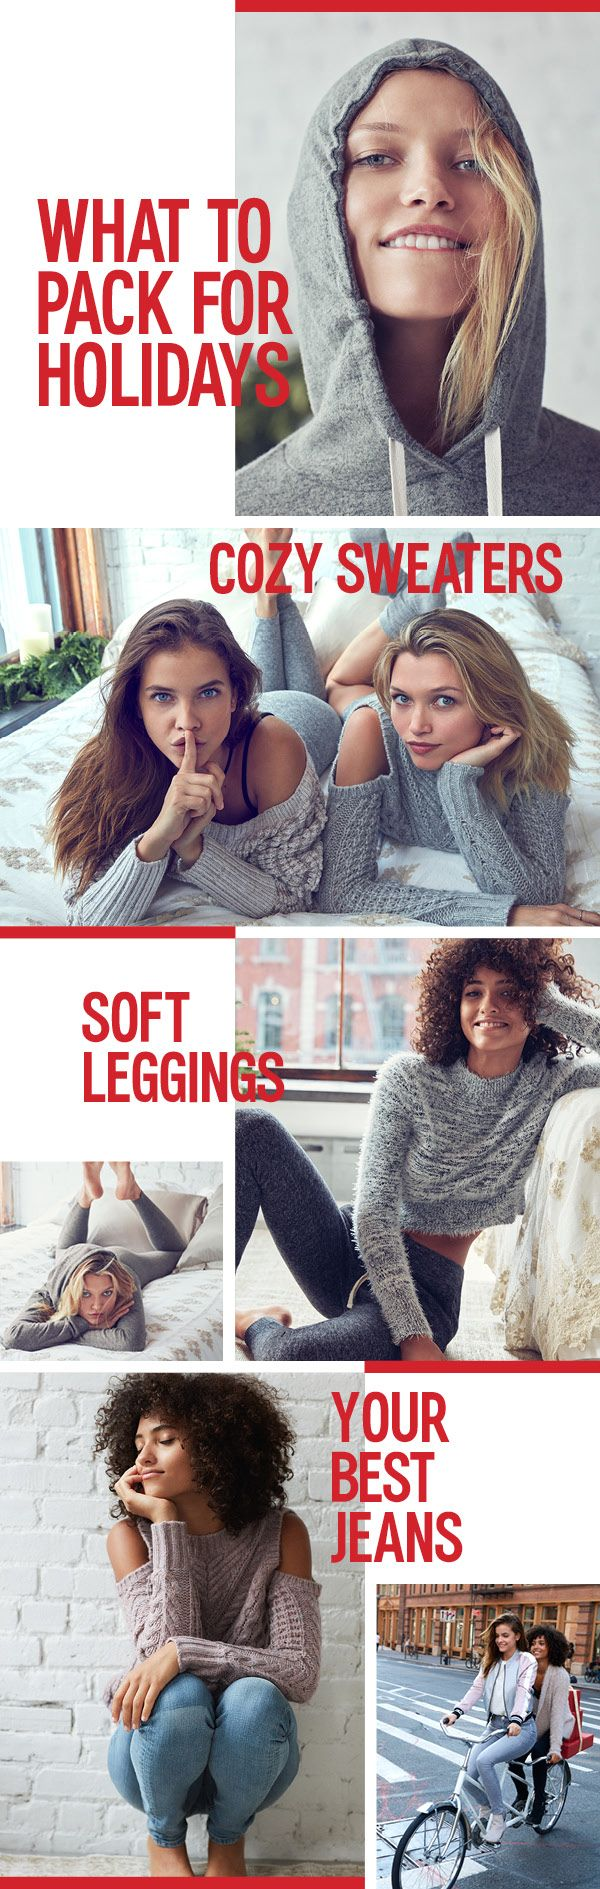 Being with family and friends is the best part of the holidays. If you're heading home, be sure to pack the essentials. First, you'll need cozy sweaters that work for movie marathons as well as a casual drinks with old friends. Next, pack two pairs of fleece leggings for those lazy mornings. Finally, pack a few pairs of your favorite Express jeans for dinner parties and other casual get-togethers.